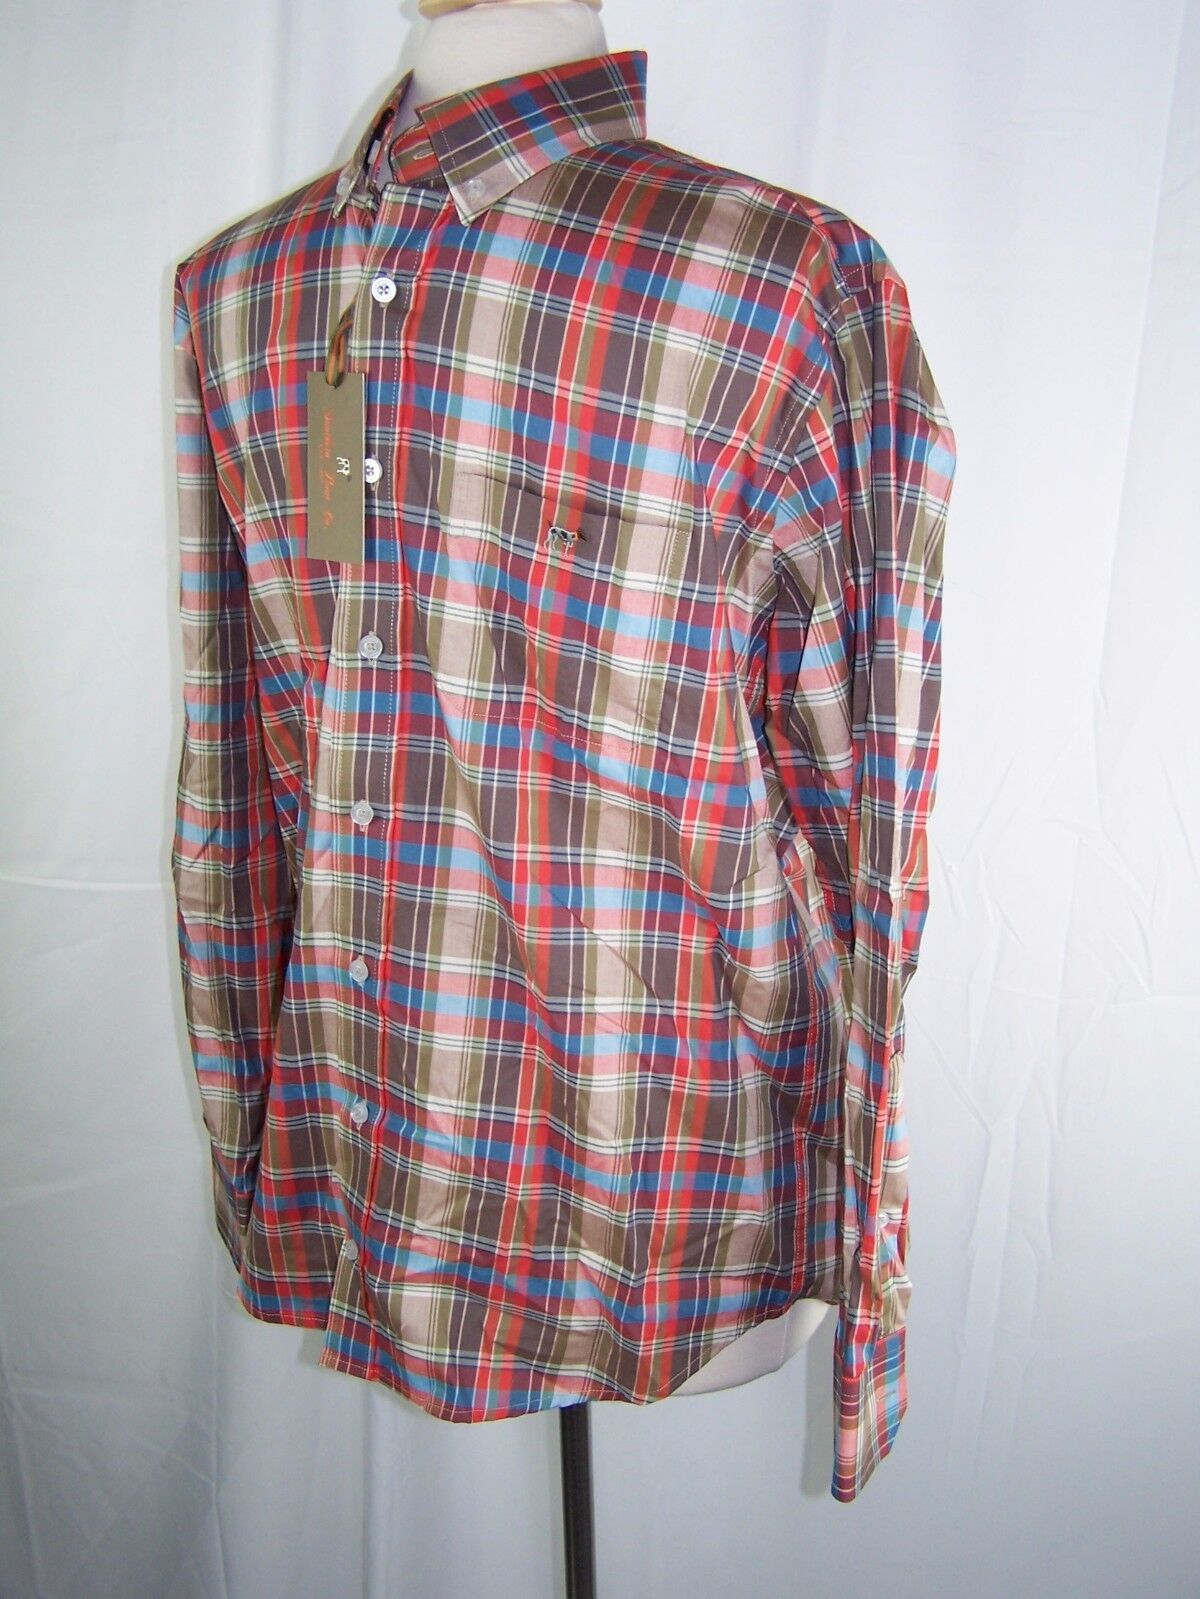 Southern Point Button Hadley Shirt orange bluee White Stripe Men's S Small NWT